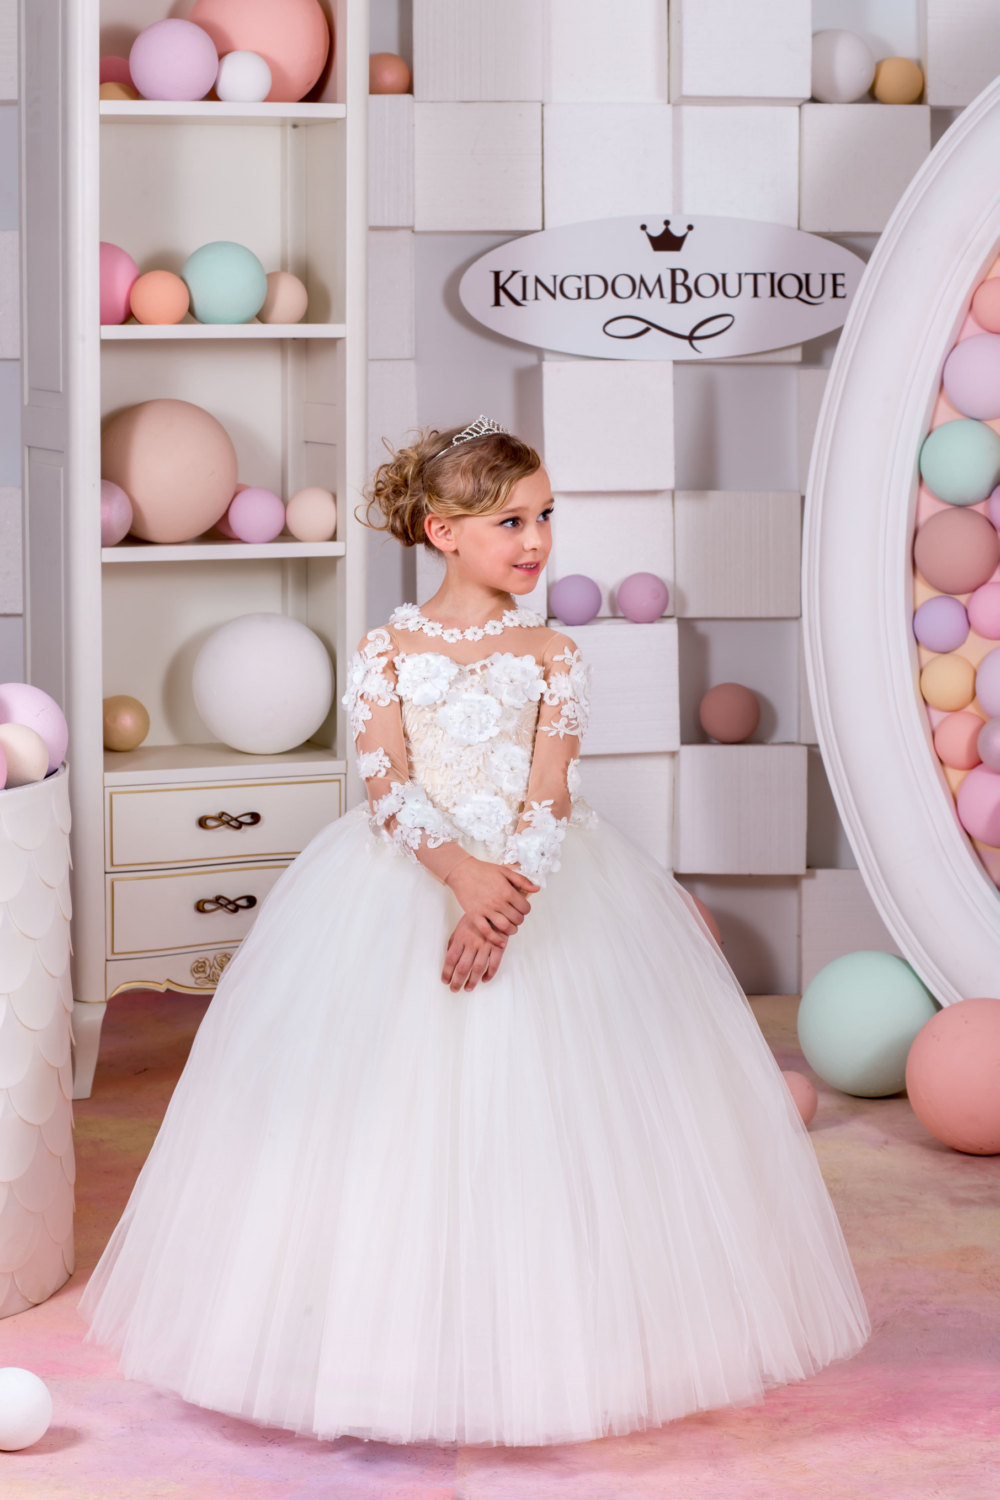 Long Sleeve Lace Flower Girl Dress For Wedding Tulle Girls Pageant Dresses Little for Girls Gown Ball Gown Holy Communion Dress long sleeve lace flower girl dress for wedding tulle girls pageant dresses little for girls gown ball gown holy communion dress